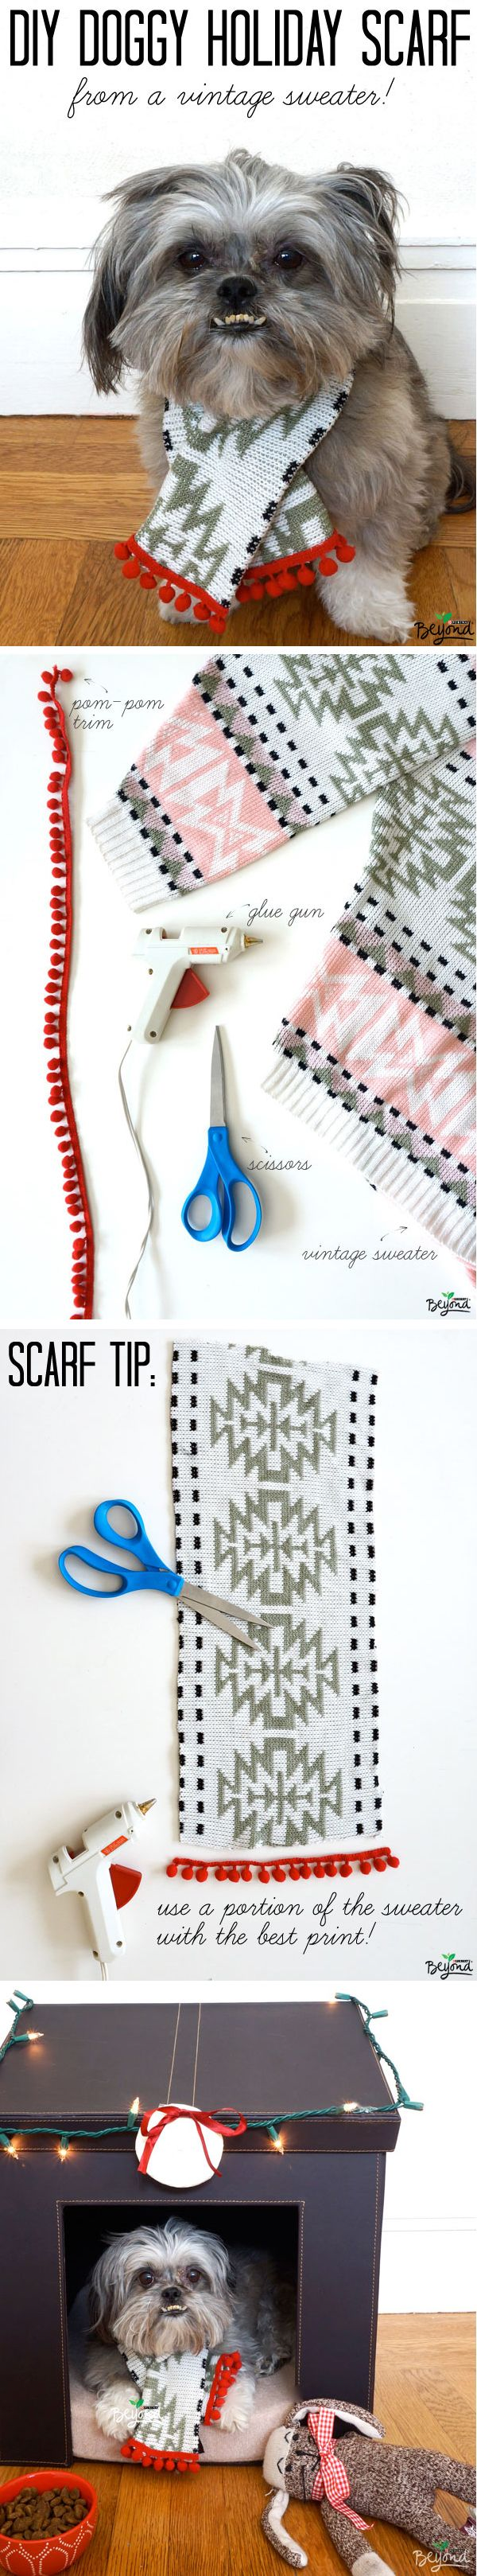 #DIY Doggy Holiday Scarf. The supplies you'll need: an old sweater, contrast pom-pom trim, scissors, and a glue gun.  Choose a portion of the sweater that has the best print. For larger dogs, make sure you're using a large sweater. To add pom-pom trim, just add hot glue. Fold scarf edges over for no-fray edges and you're done. No sewing necessary! Put your old sweaters to good use this holiday season and upcycle a scarf for your dog. #thinkbeyond #commissioned